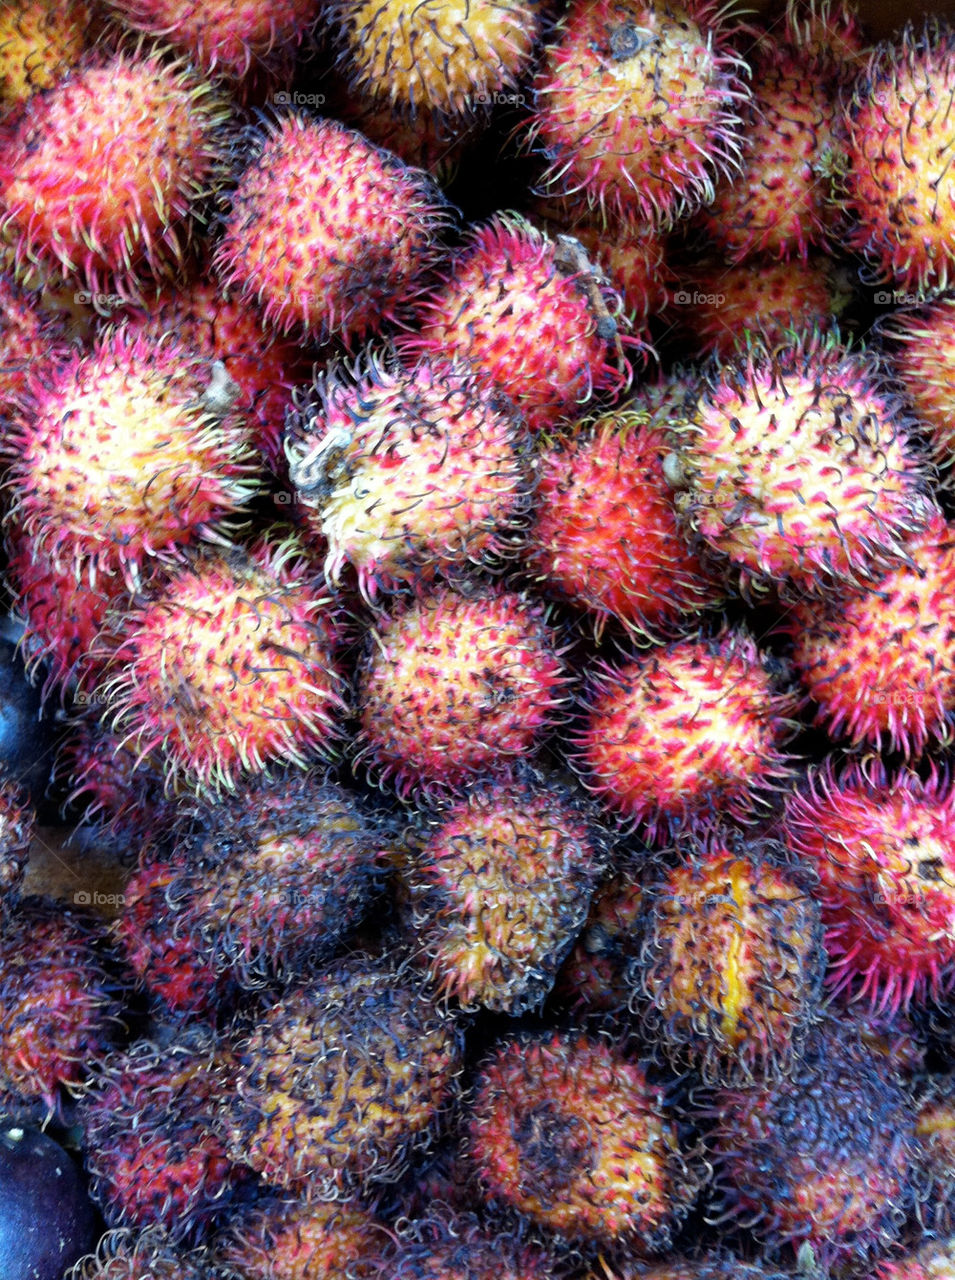 Spiky Lychee fruit at an American midwestern market.